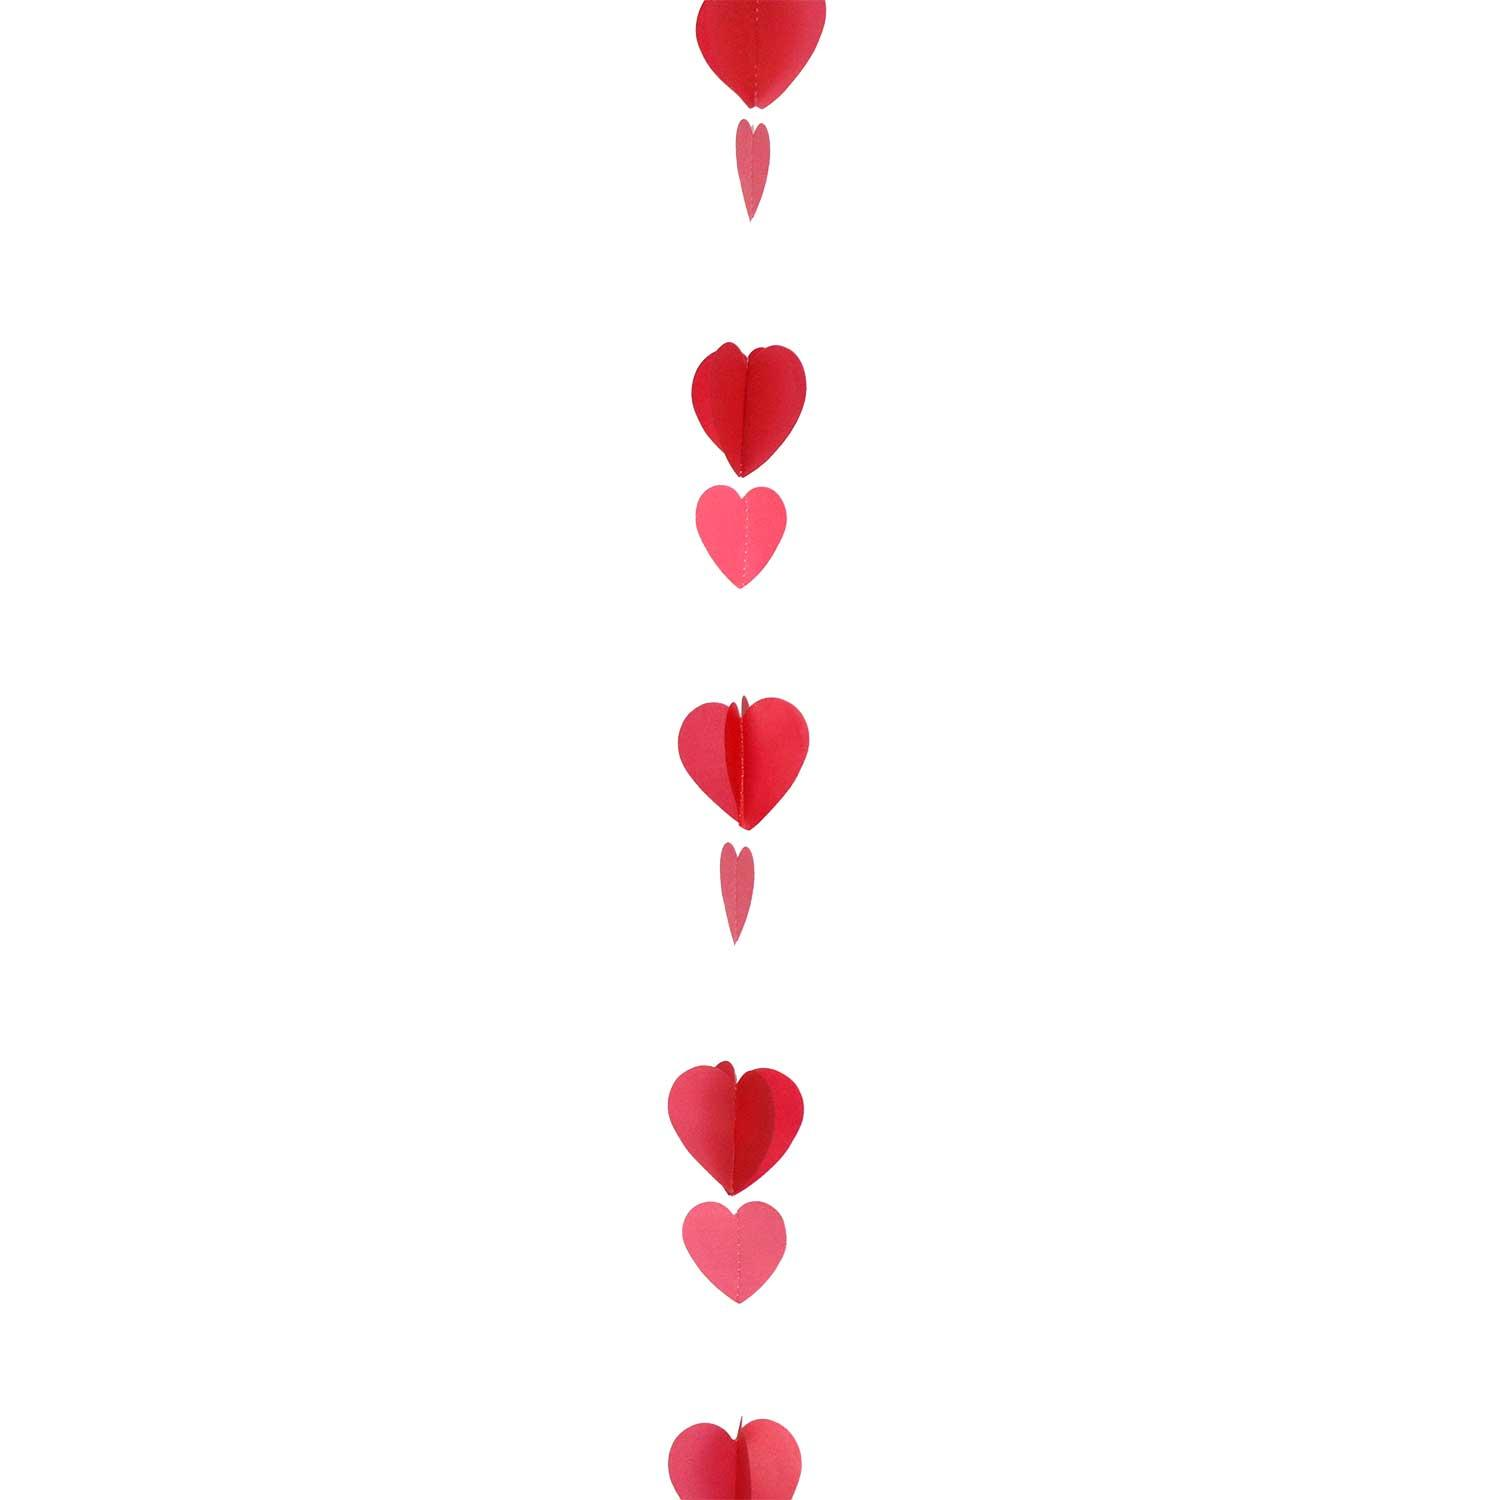 Balloon Tail String Hearts Red Pink White